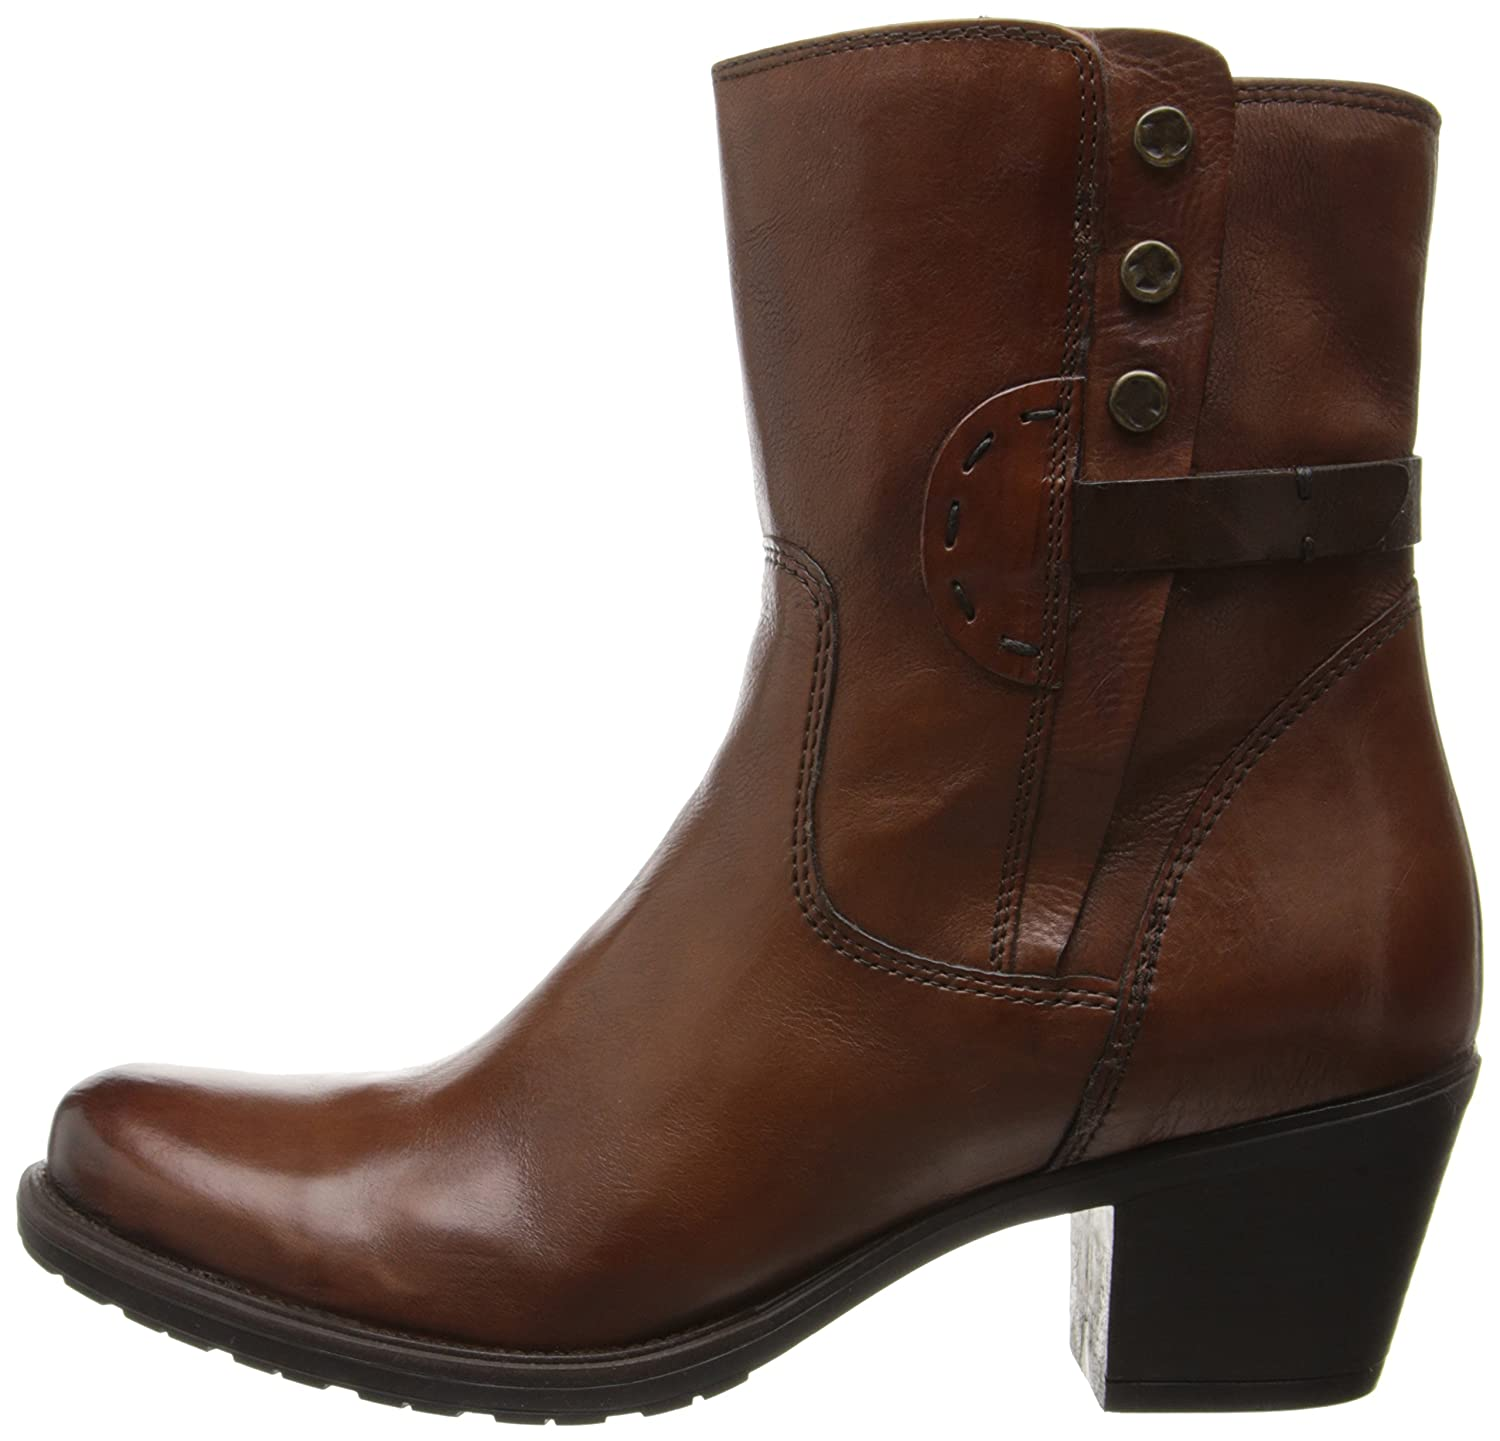 CLARKS Women's Maymie Skye Boot Leather B00HWIMM3Q 6 B(M) US|Cognac Leather Boot df0800